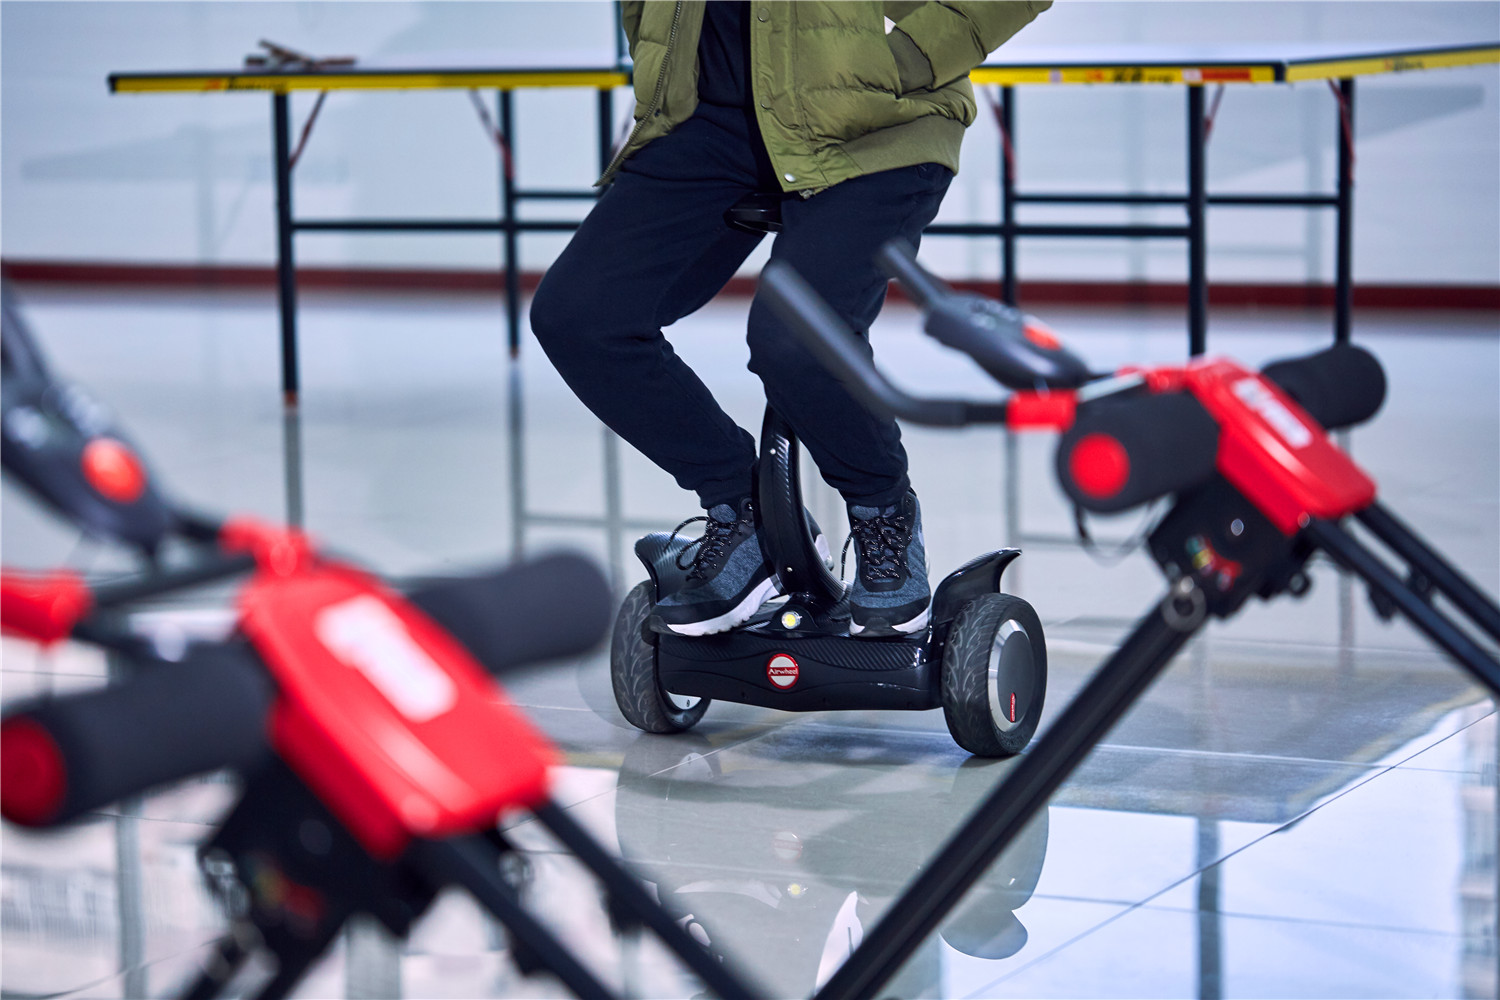 Airwheel S8 robot self-balancing scooter